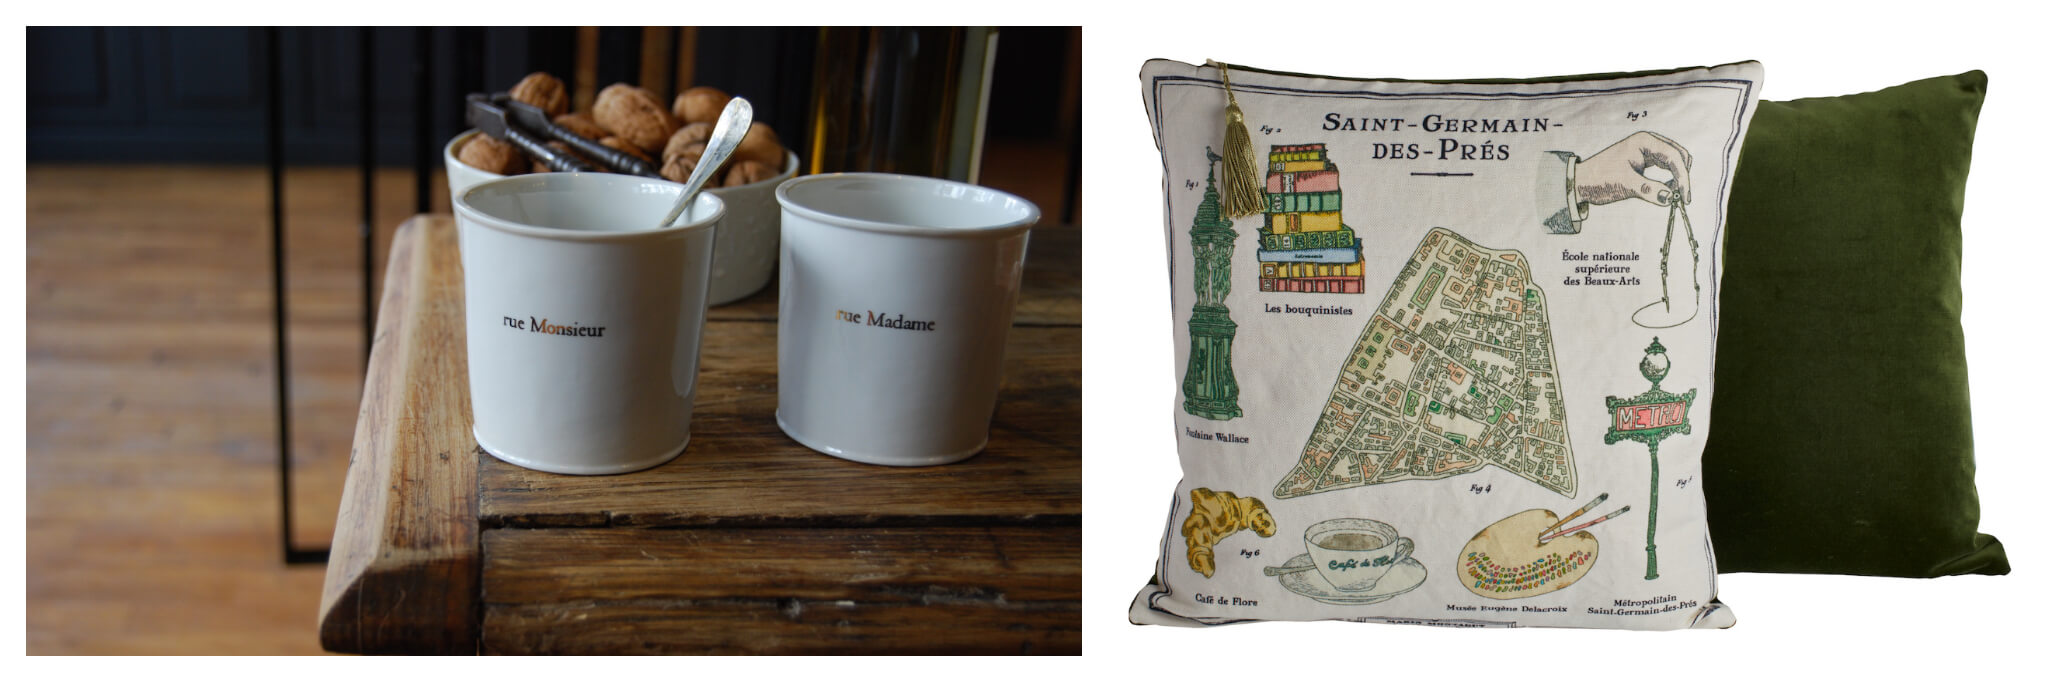 """Left: Two white mugs (also called timbales) with select Paris street names, """"rue Monsieur"""" and """"rue Madame"""" engraved in gold, Right: The green back of a  pillow sits behind the front of a pillow, which has various Paris-related designs on it, like a croissant and metro sign"""